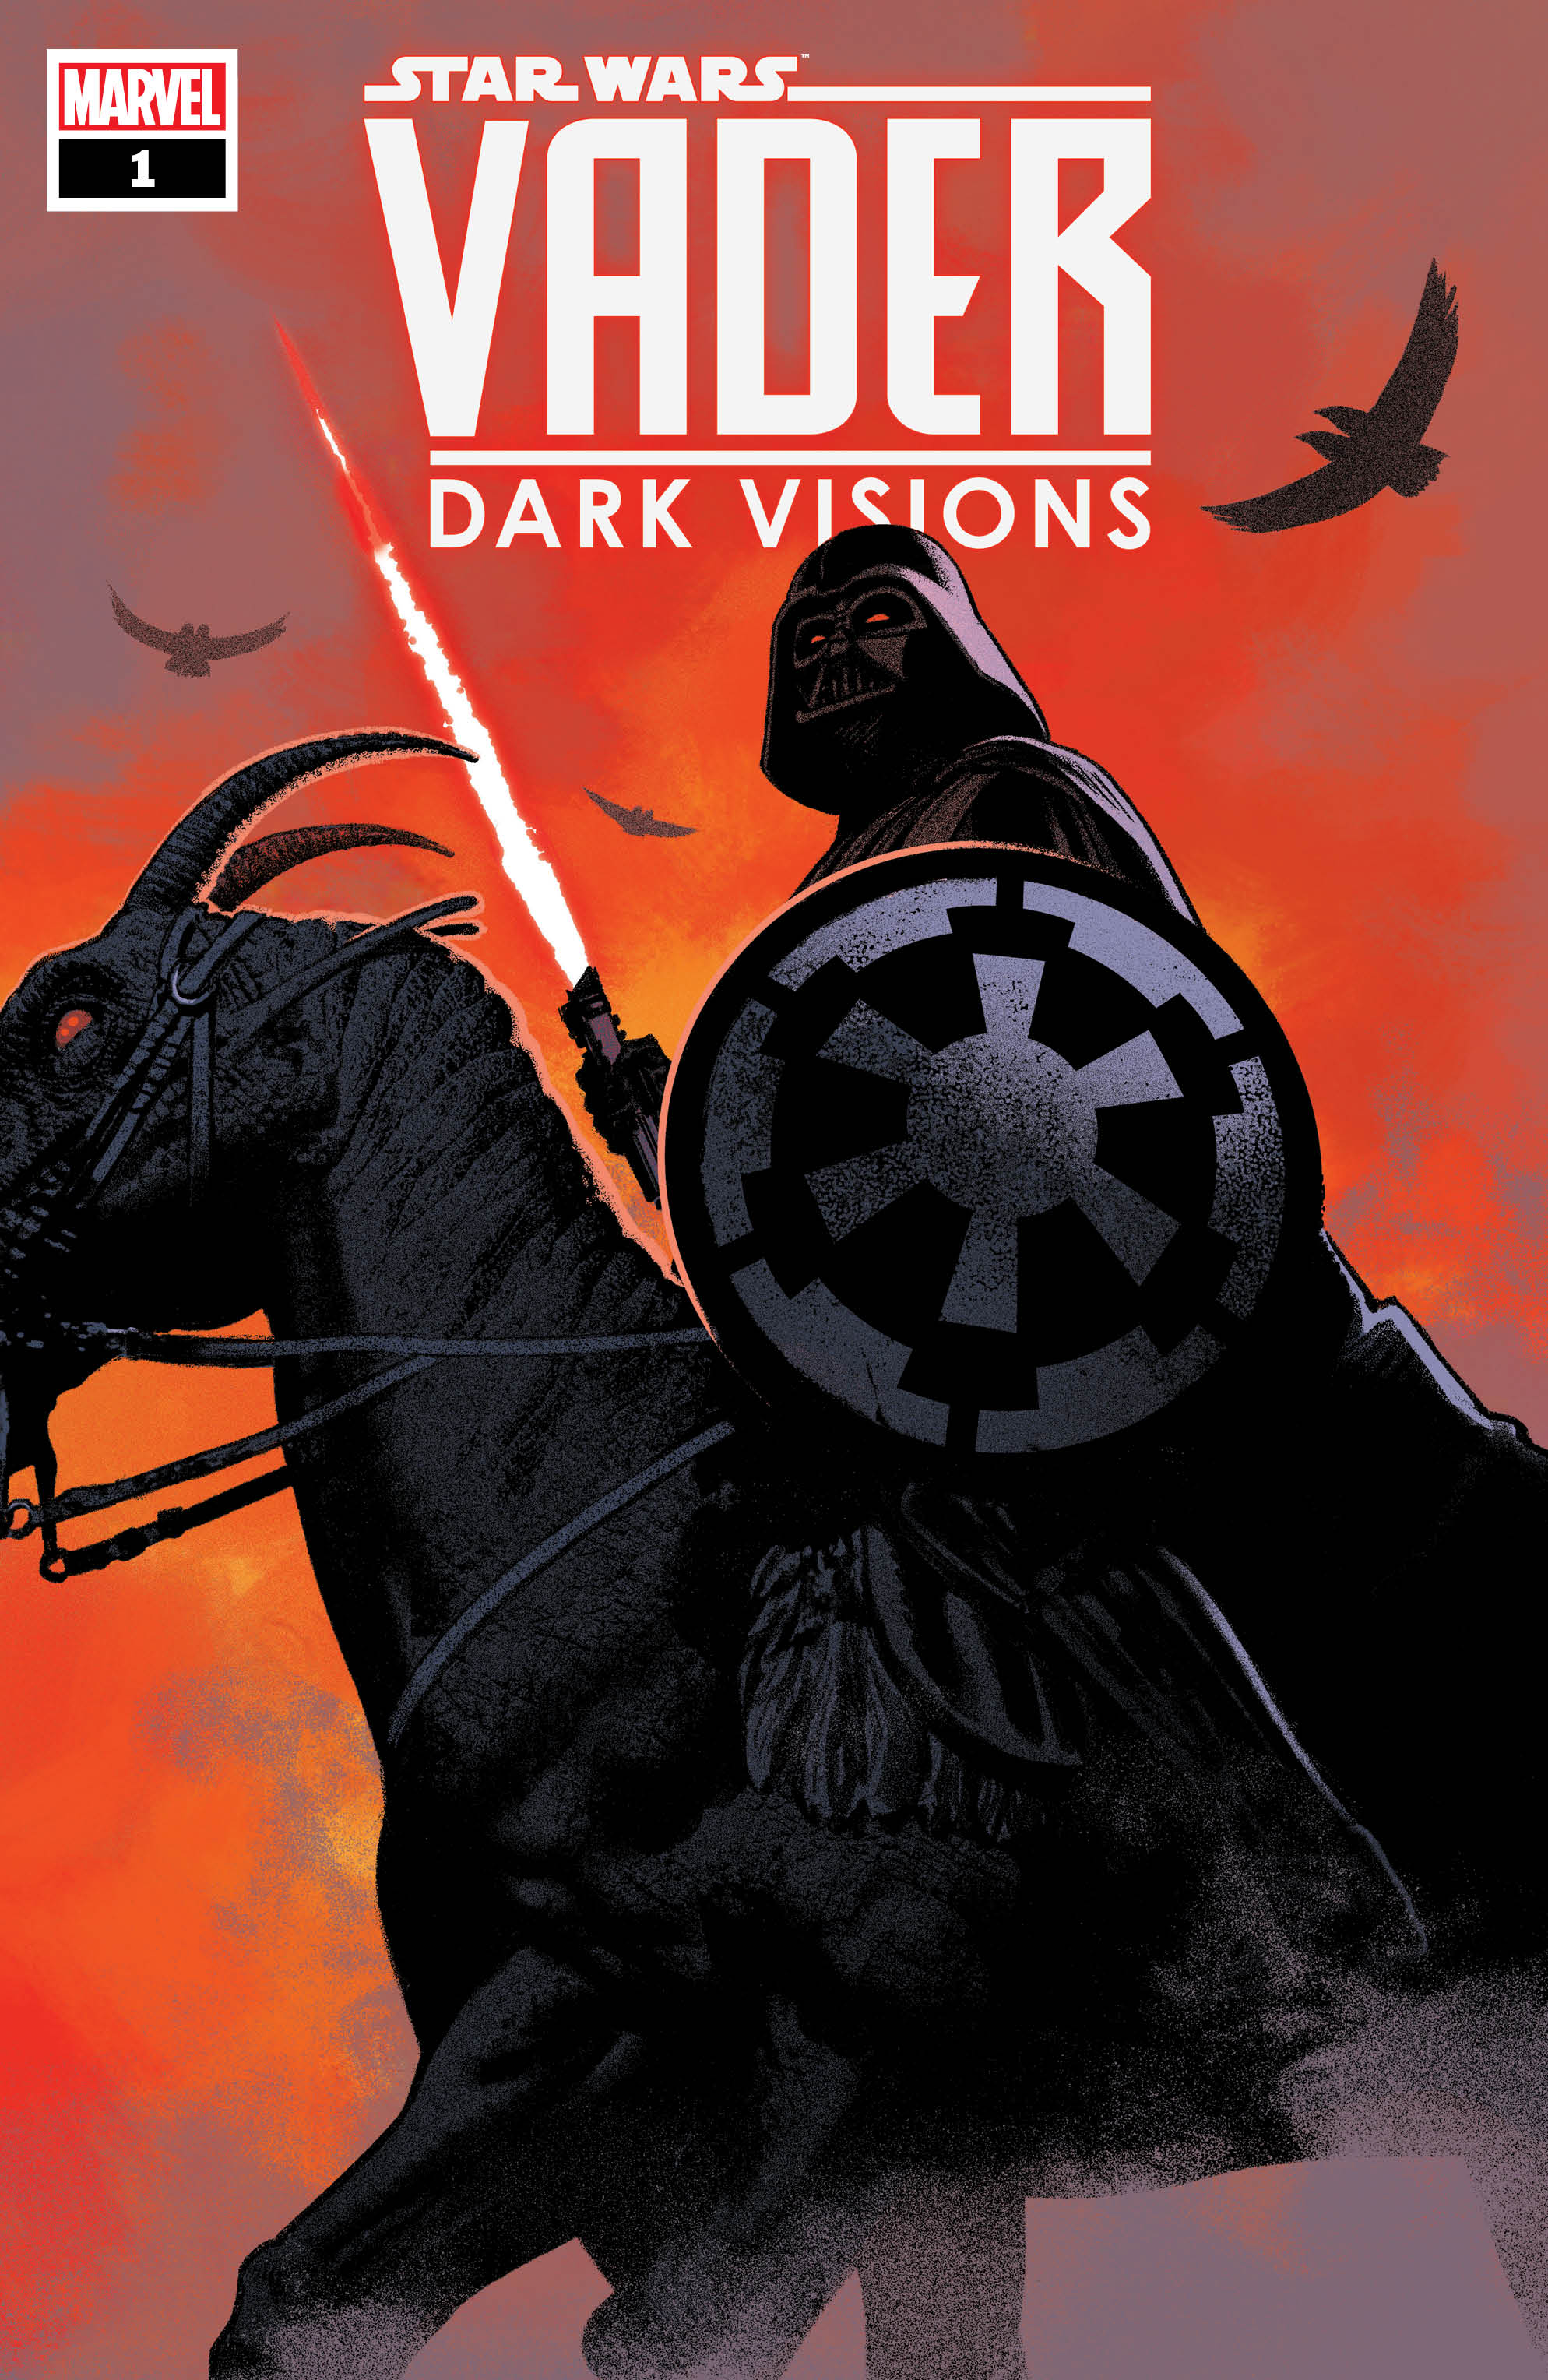 'Star Wars: Vader - Dark Visions' gallops in next March 2019